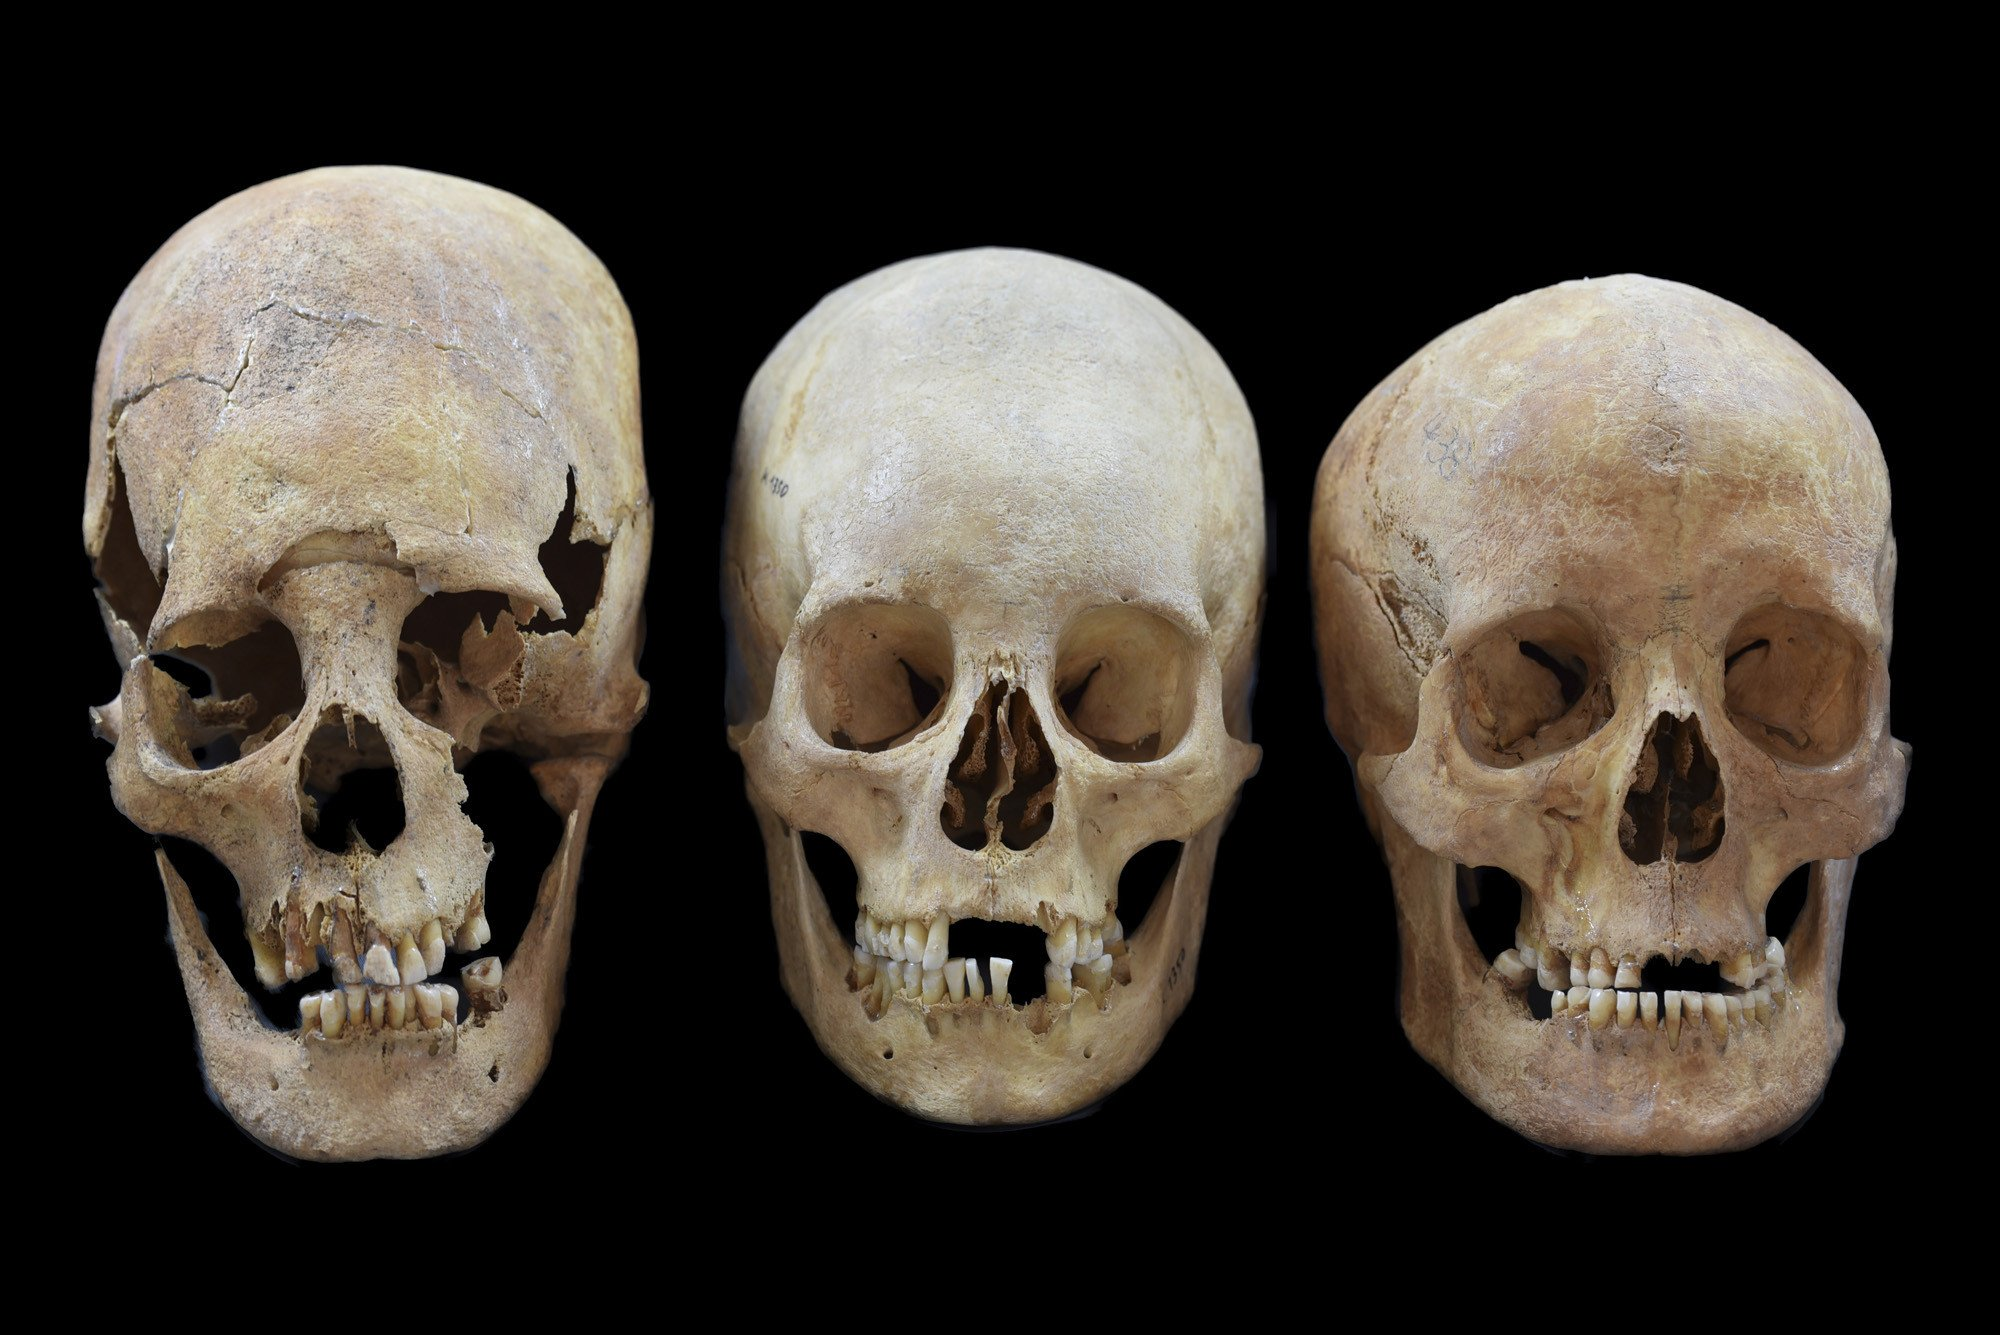 Skulls show women also moved across medieval Europe